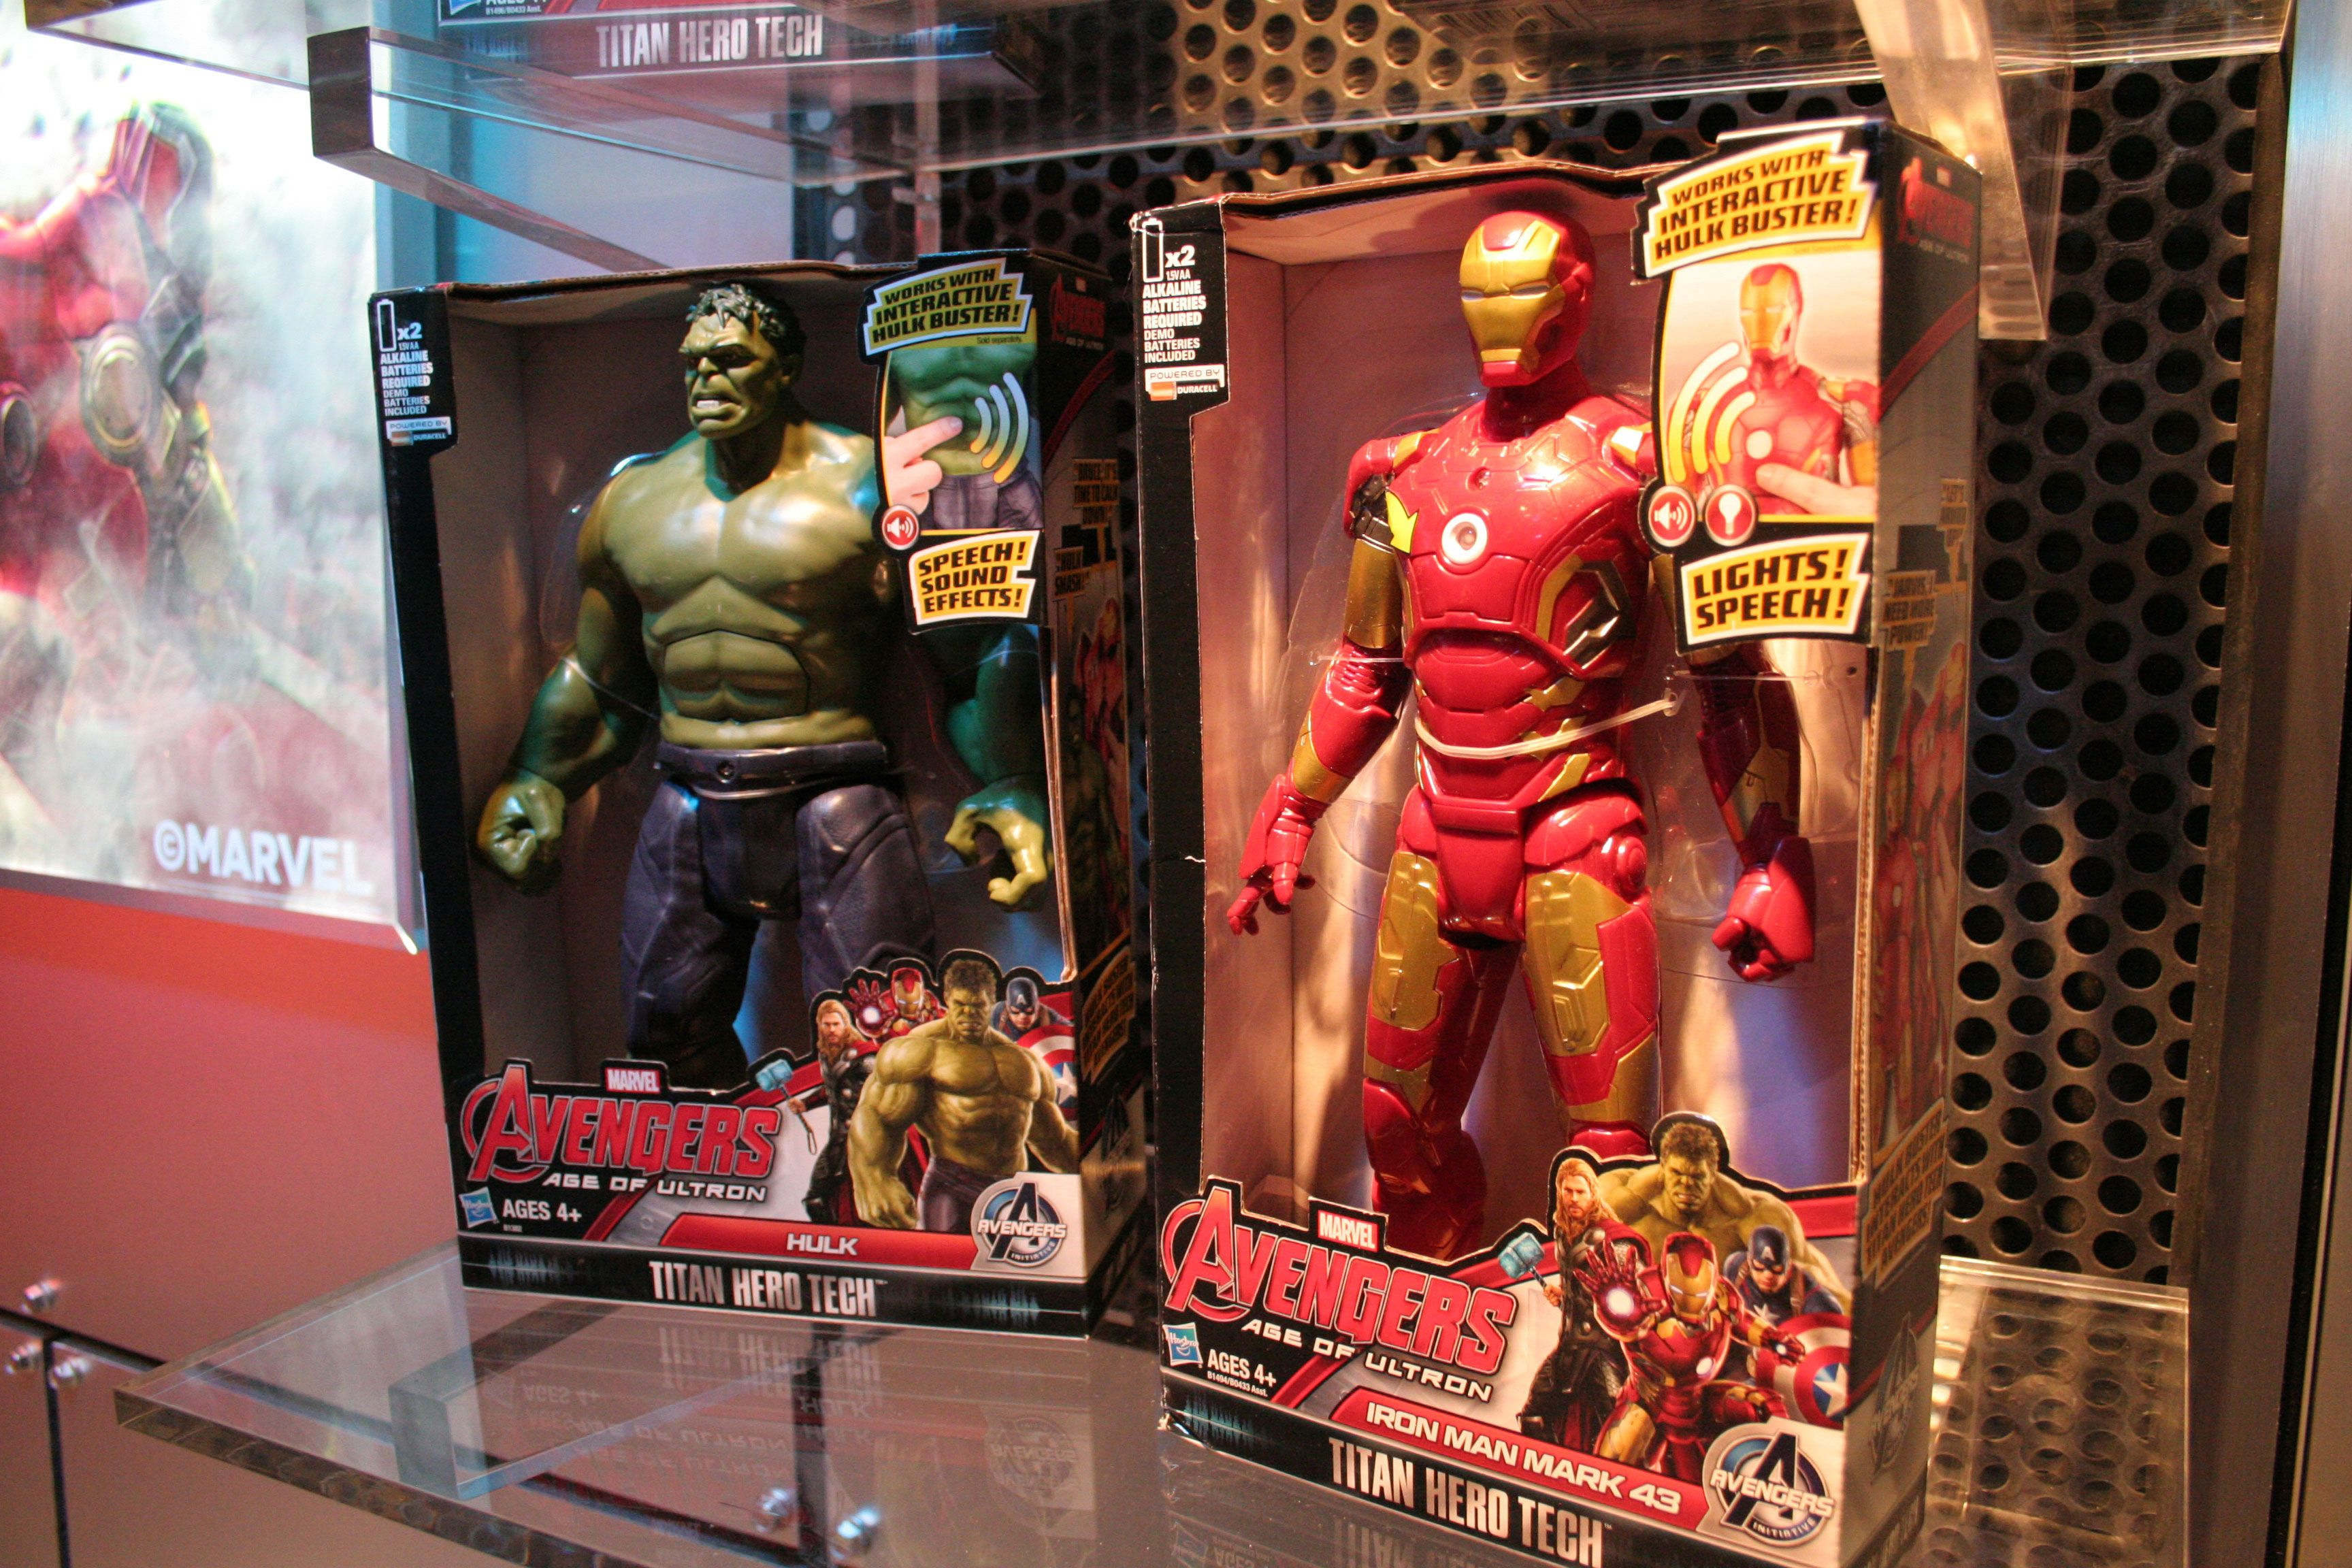 Who Makes Infinity >> Avengers: Age of Ultron and Ant-Man Toys Revealed Hasbro ...